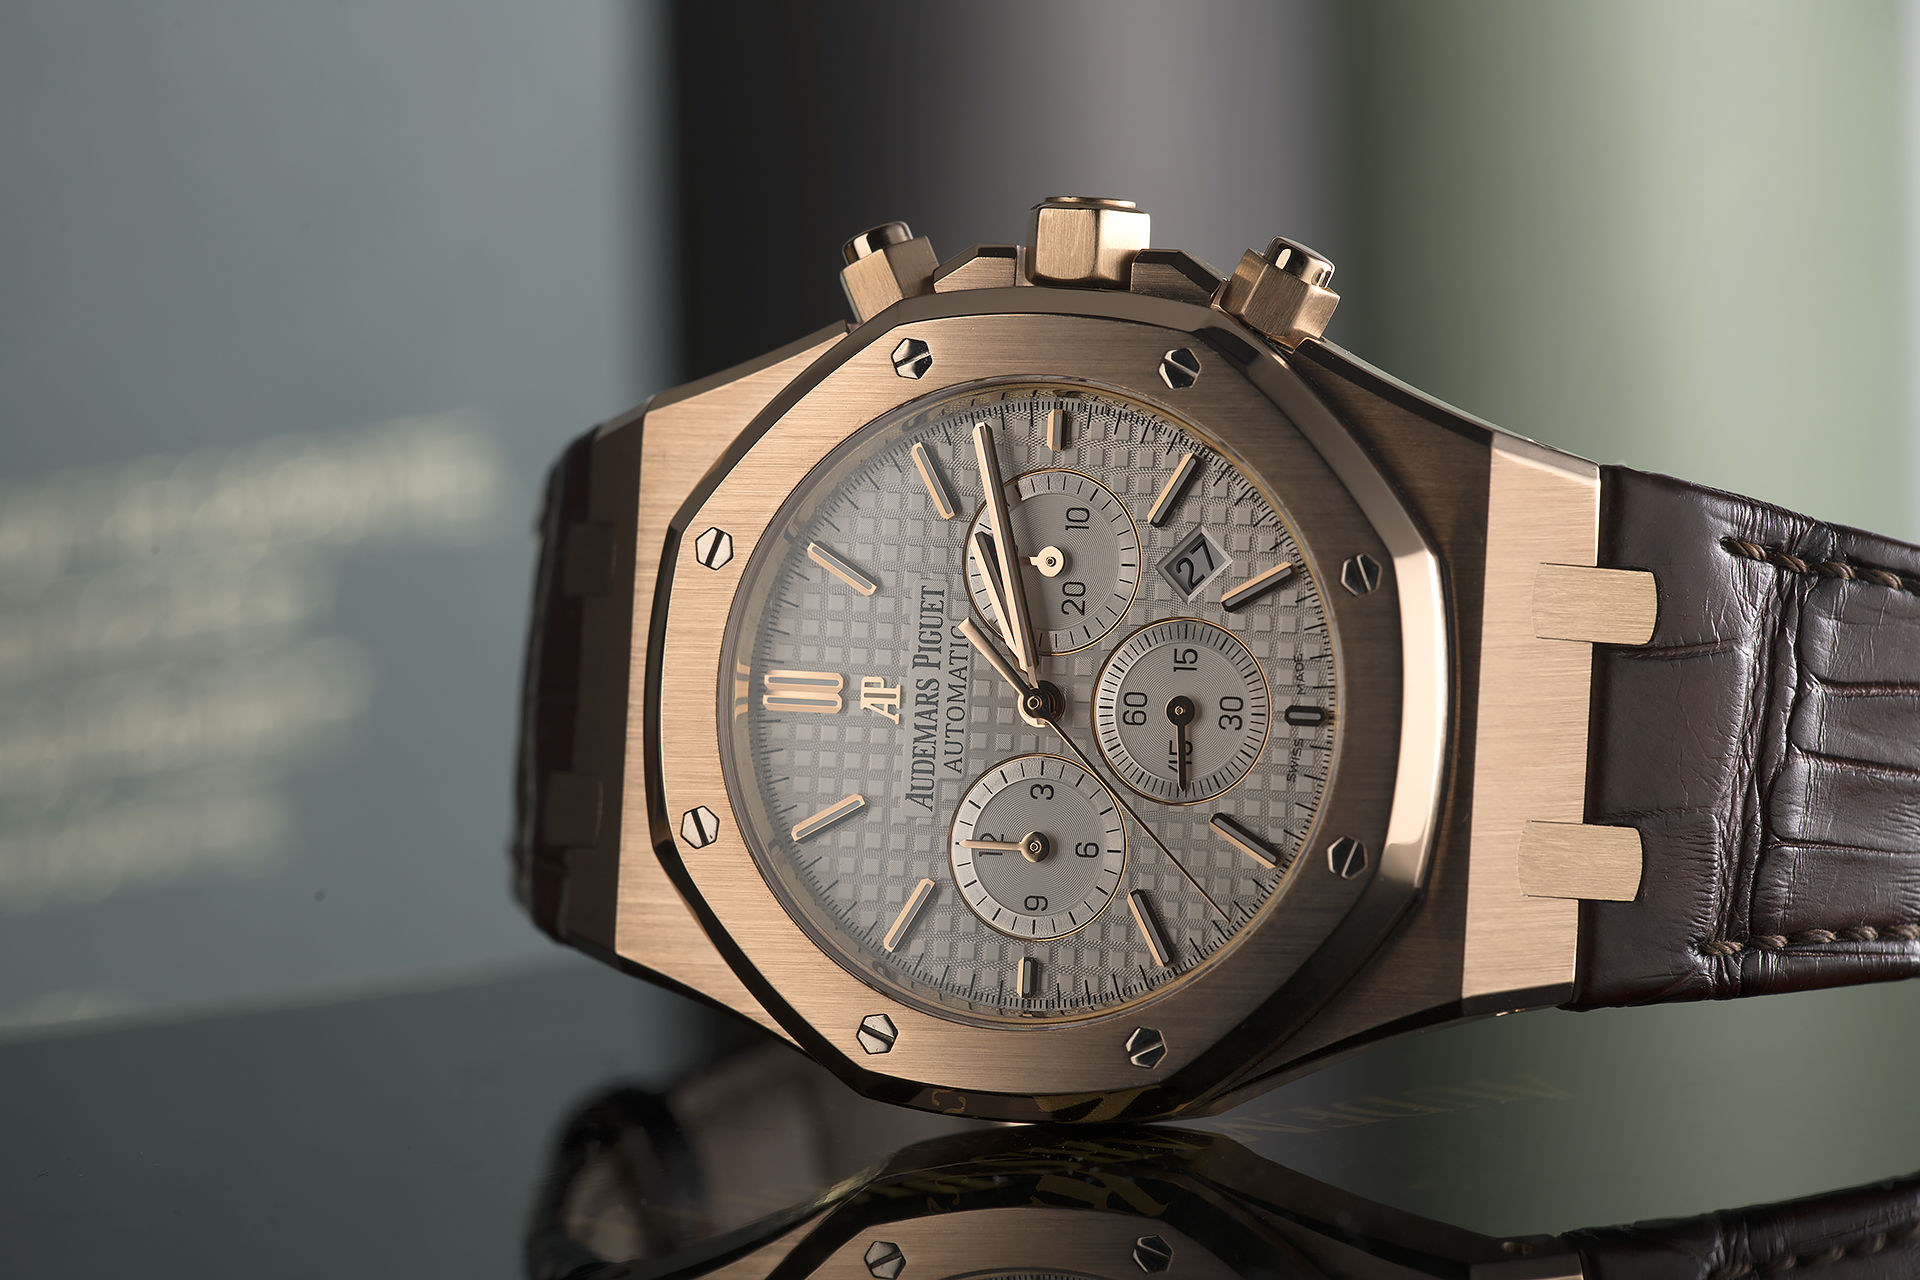 ref 26320OR.OO.D088CR.01 | Rose Gold 'Unworn' | Audemars Piguet Royal Oak